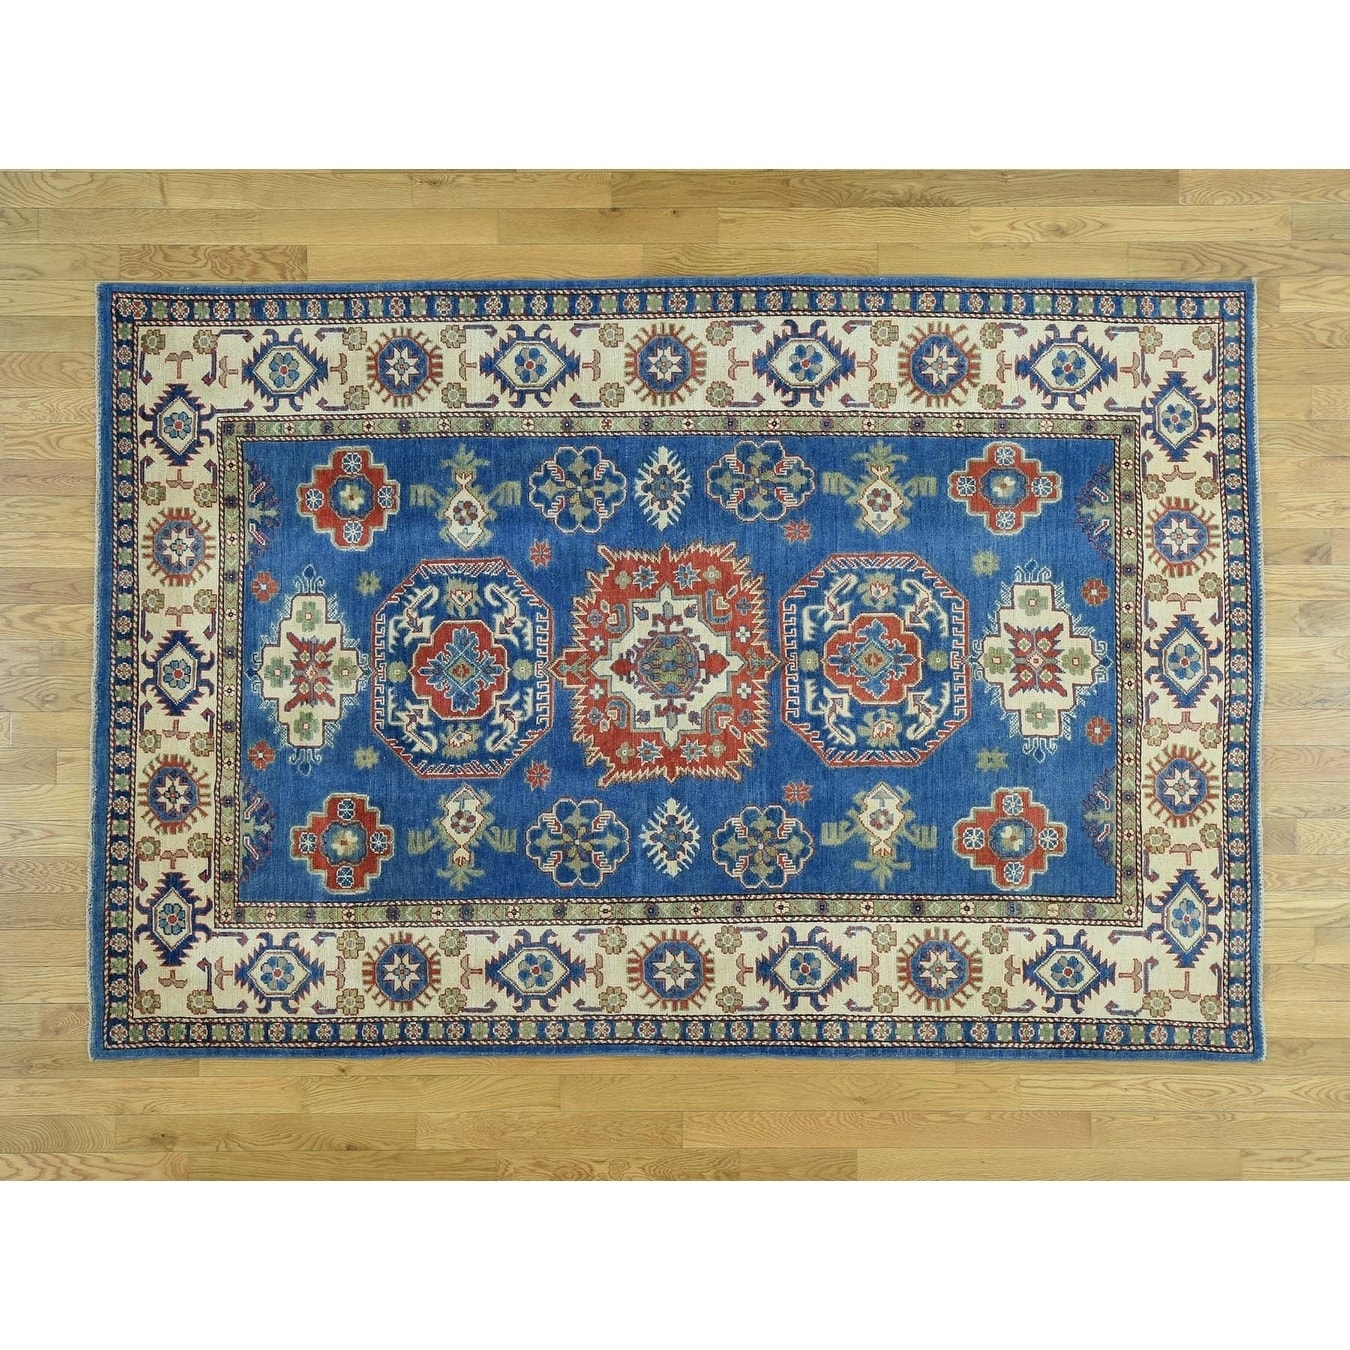 Hand Knotted Blue Kazak with Wool Oriental Rug - 510 x 89